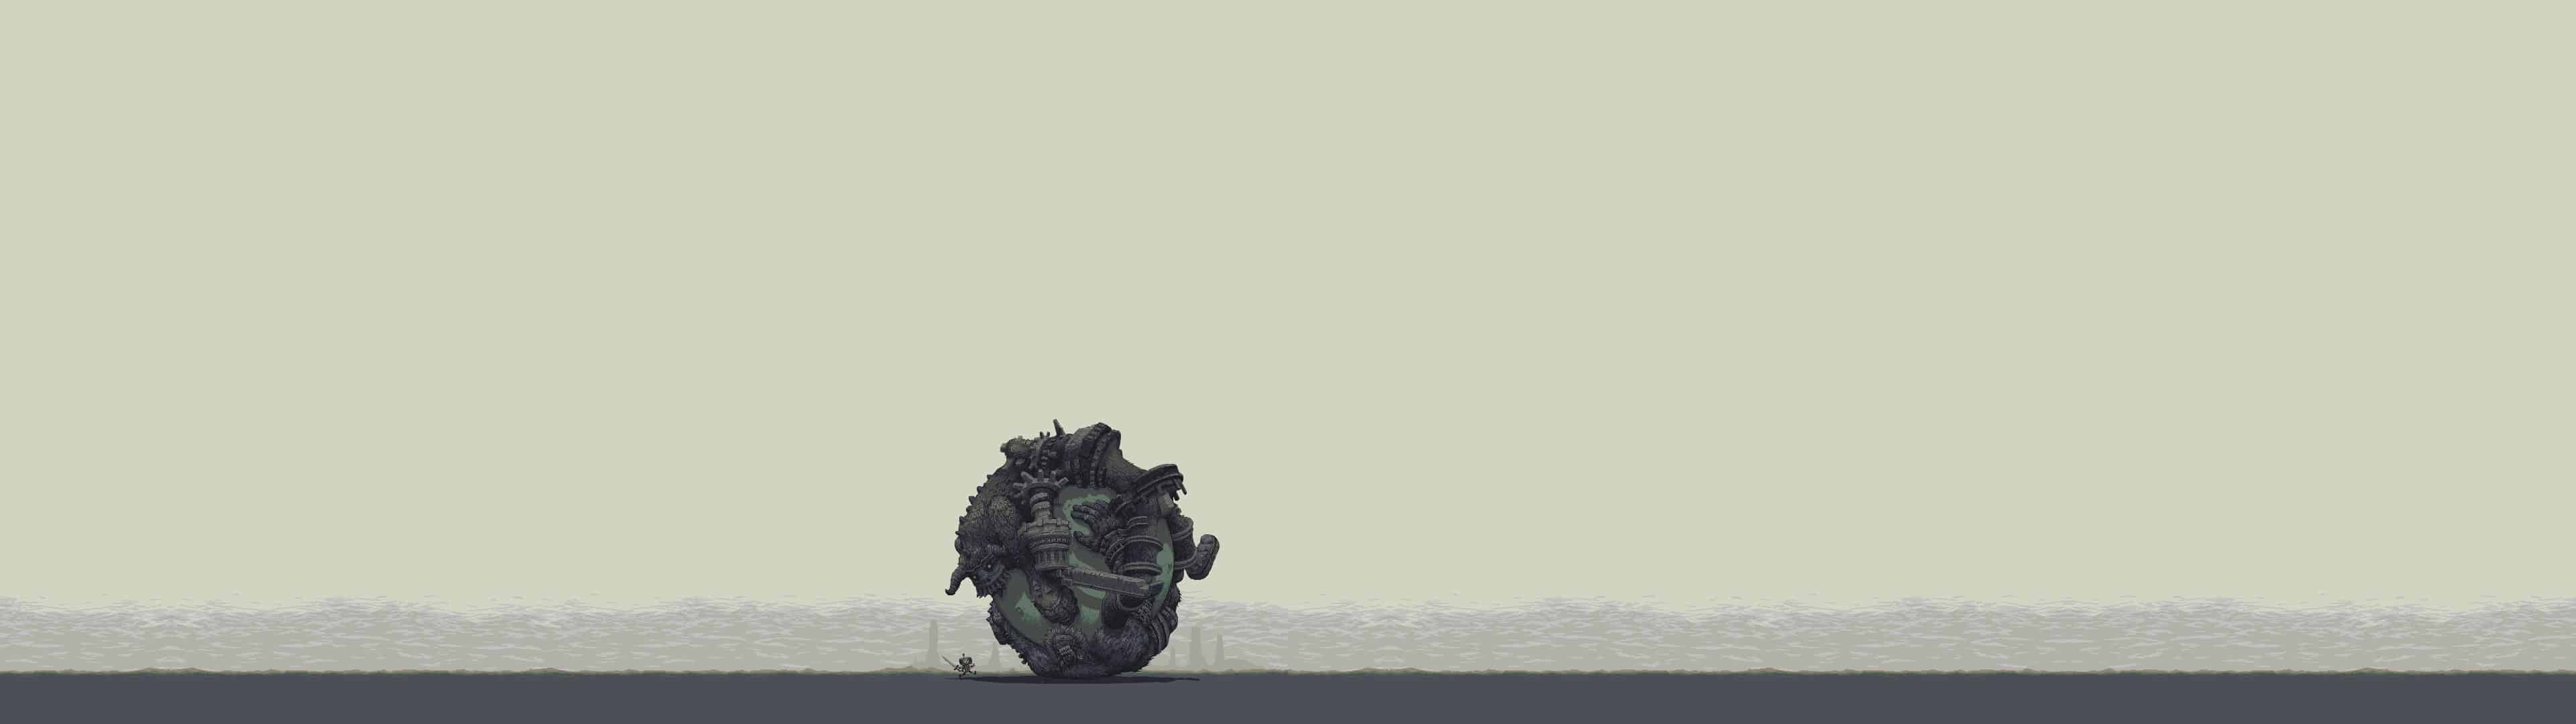 Shadow Of The Colossus 2 Dual Monitor Wallpaper Pixelz